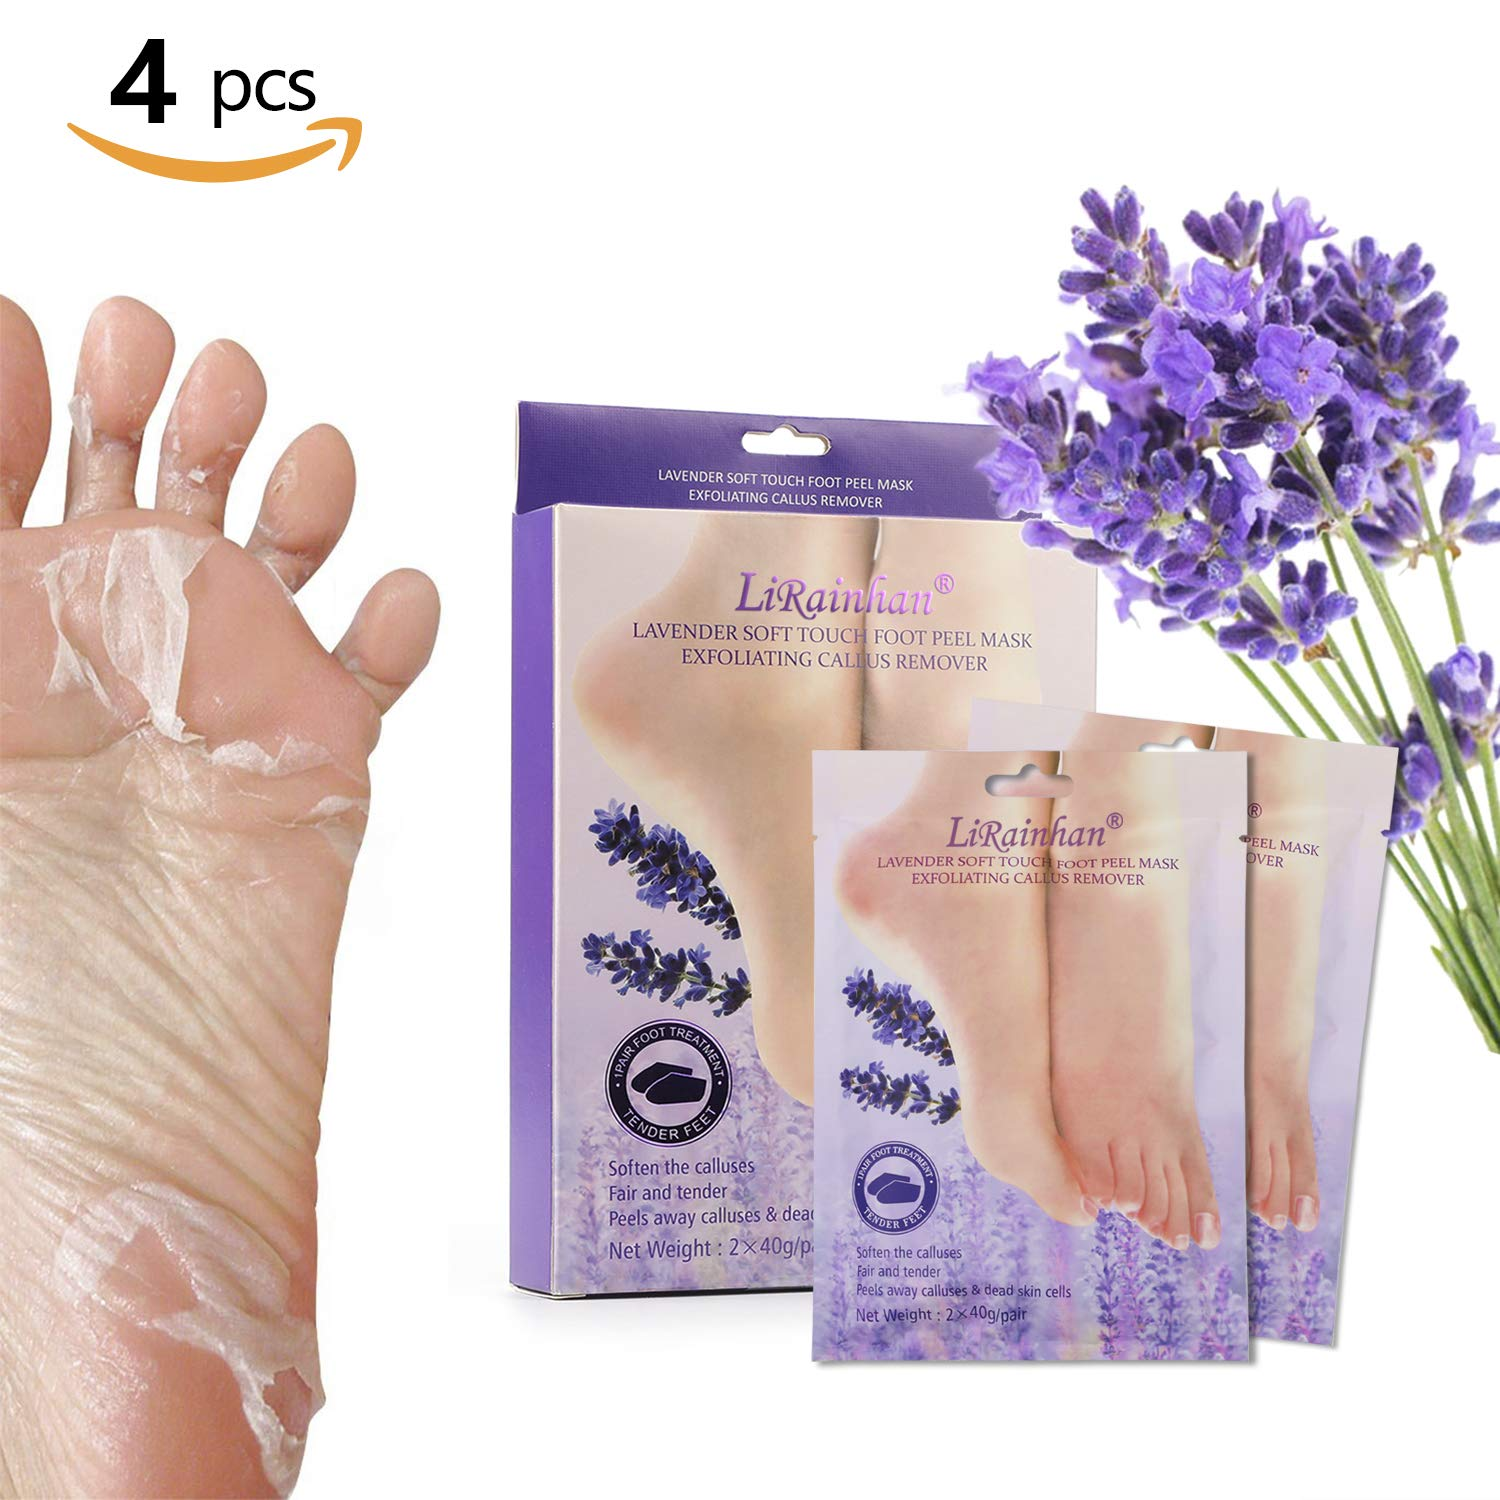 2 Pairs Exfoliating Foot Peeling Mask Socks, Phogary Moisturizing Lavender Scented Peel Booties for Callus Dead Skin Repair Cracked Heels get Soft Baby Feet